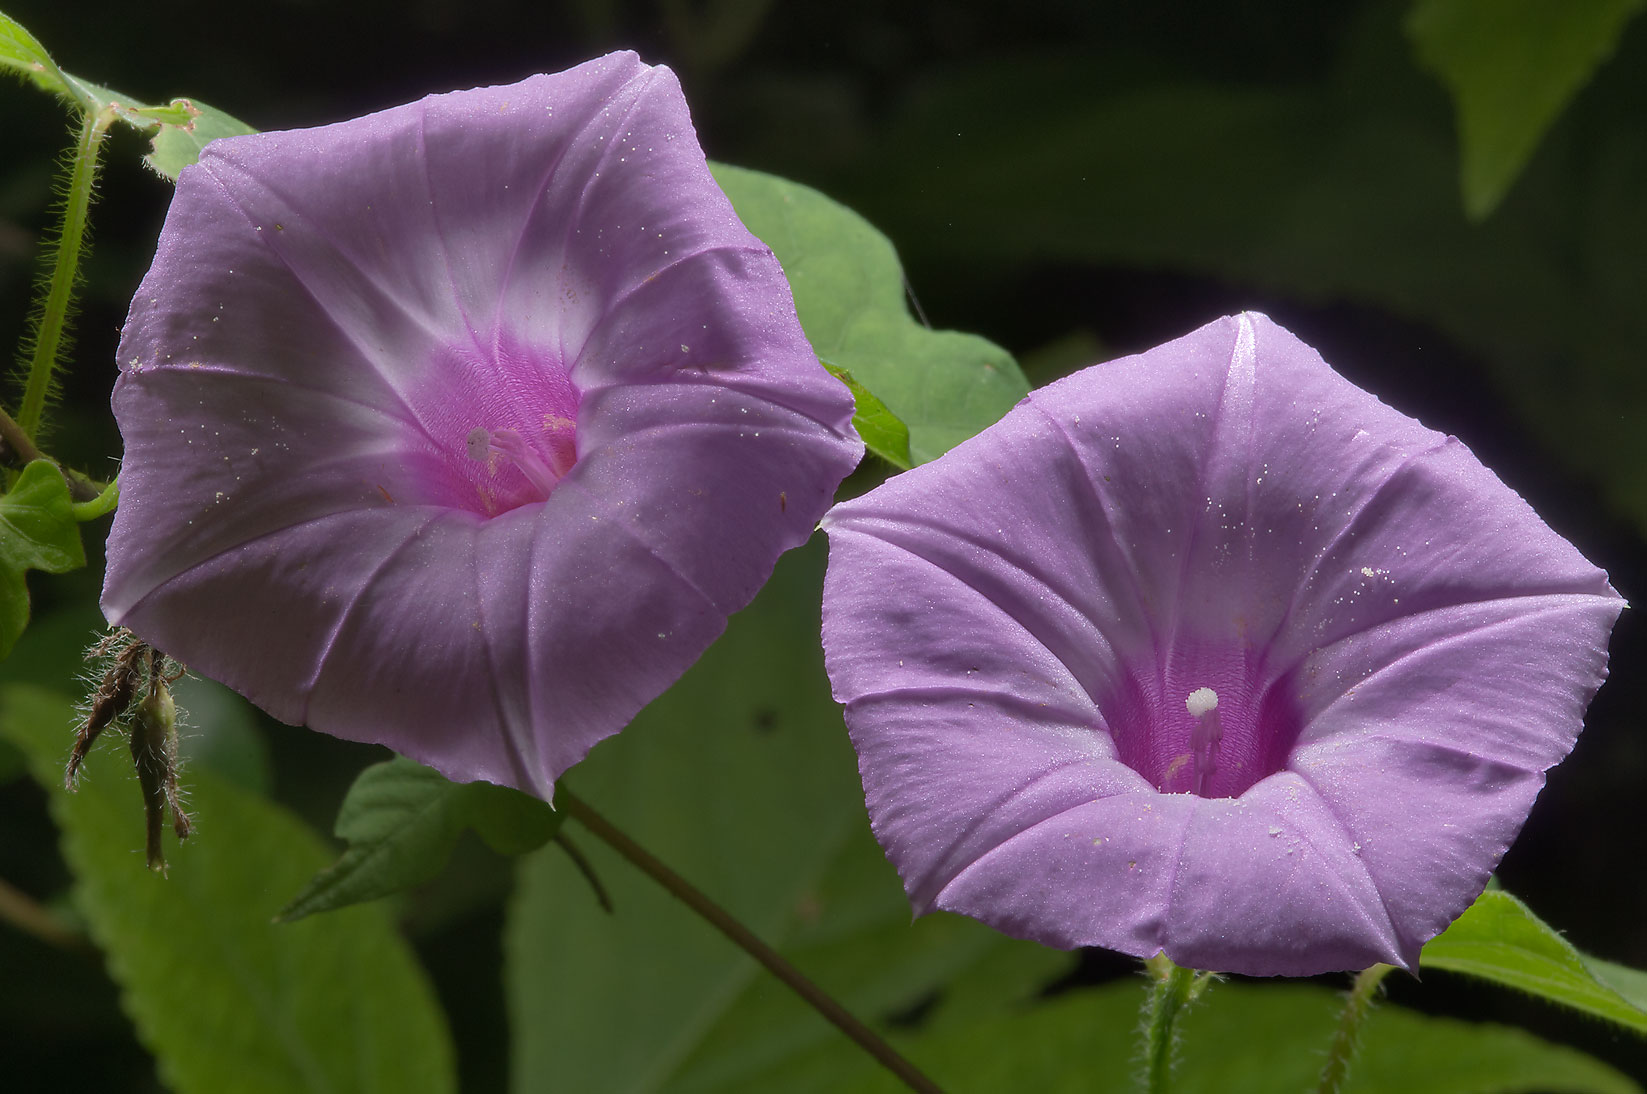 Ipomoea cordatotriloba (Morning Glory) in Little...National Forest. Richards, Texas